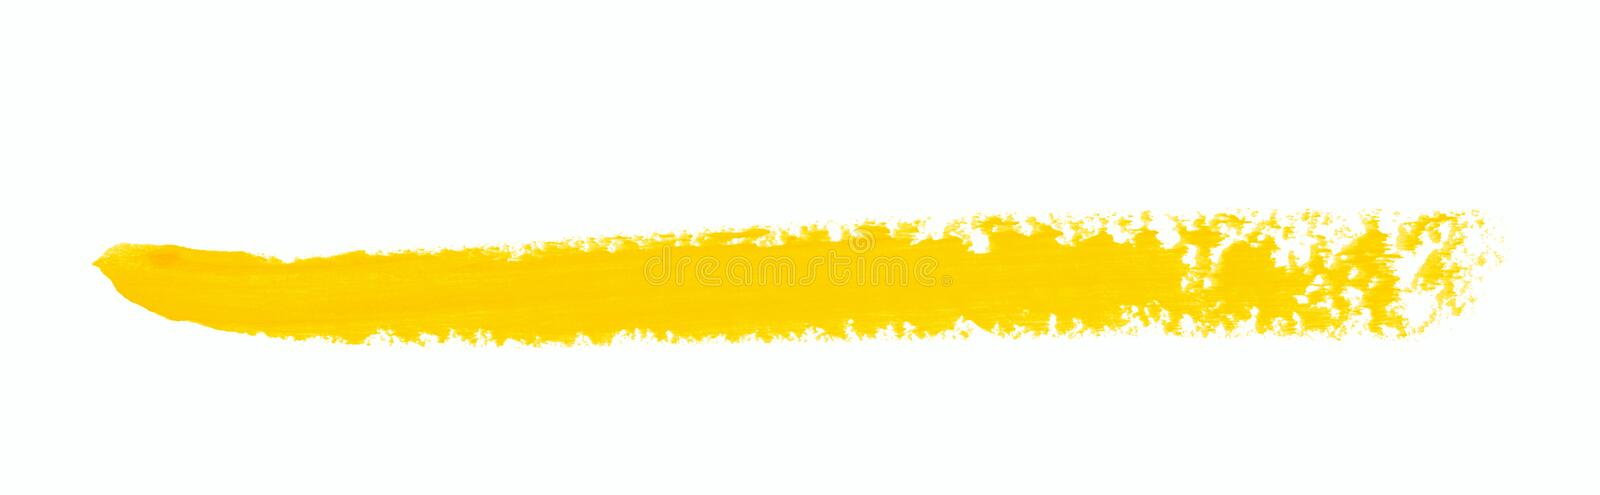 Single line marker stroke isolated. Single line marker stroke of a wax crayon as a design underline element, isolated over the white background stock photos